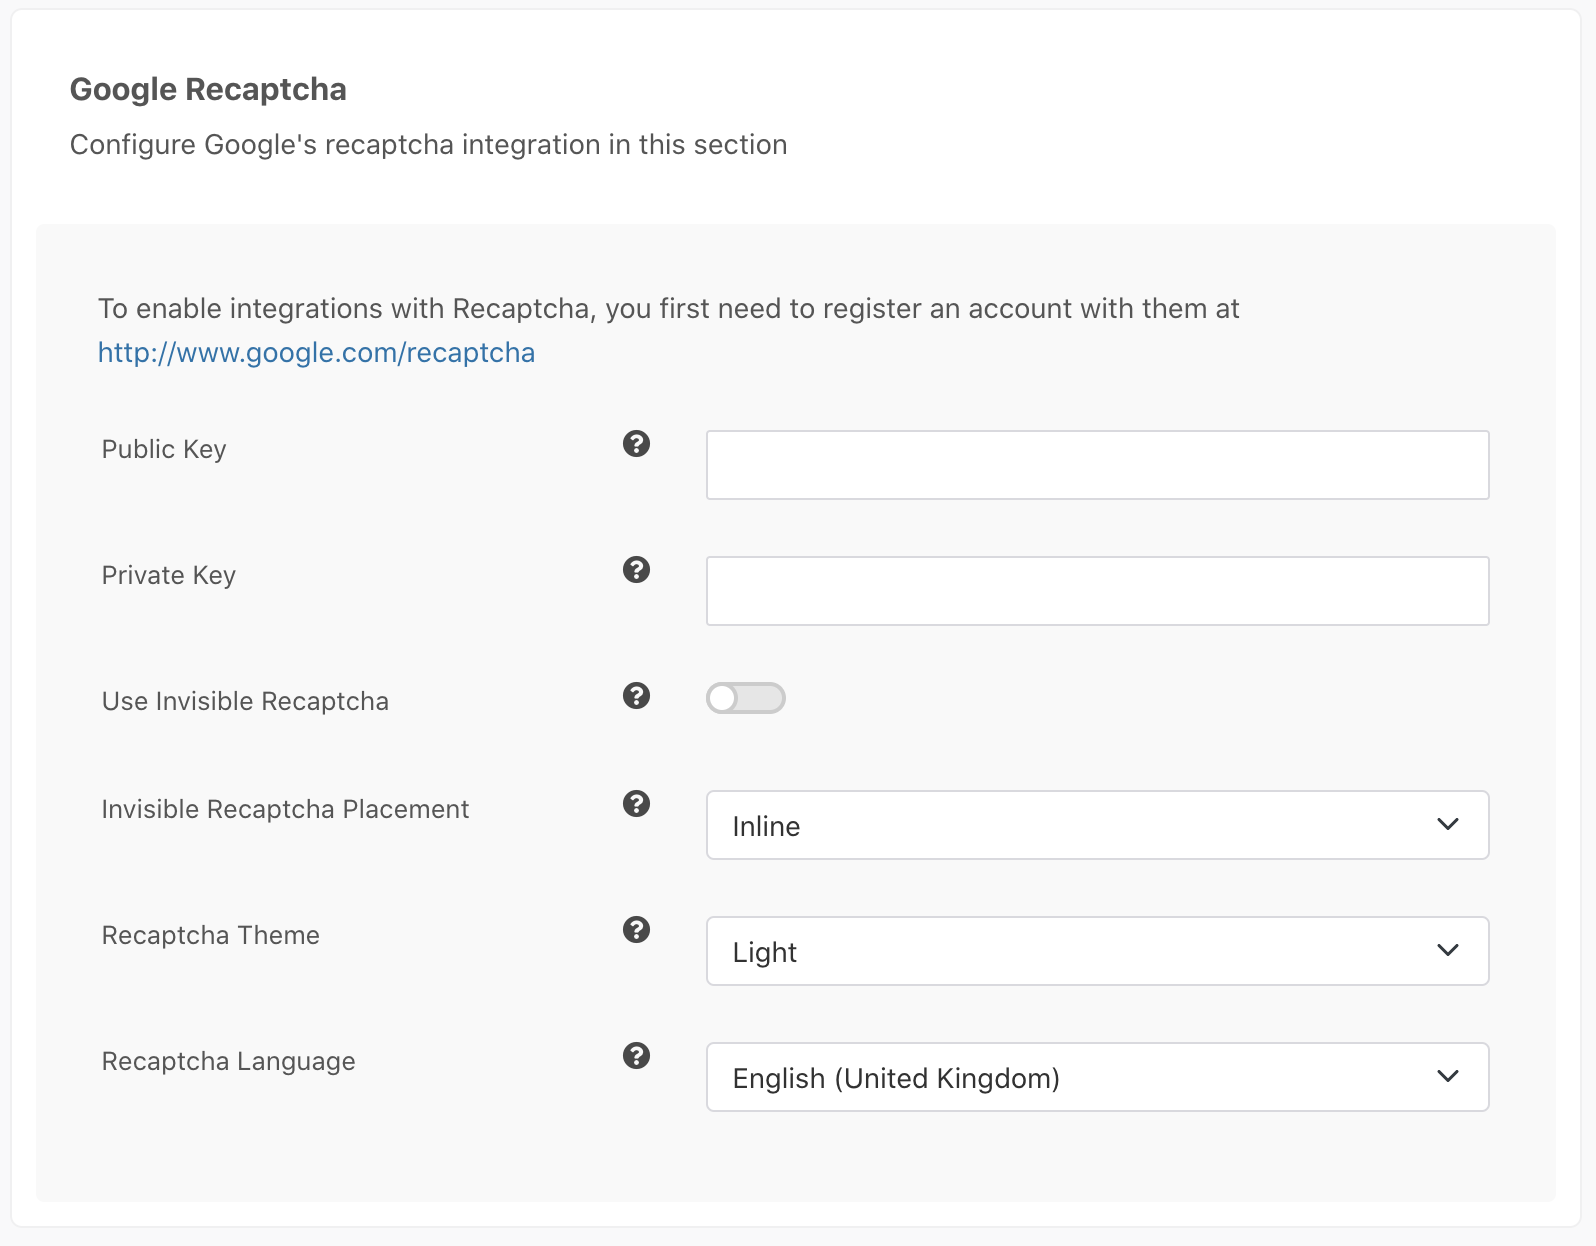 Google Recaptcha settings